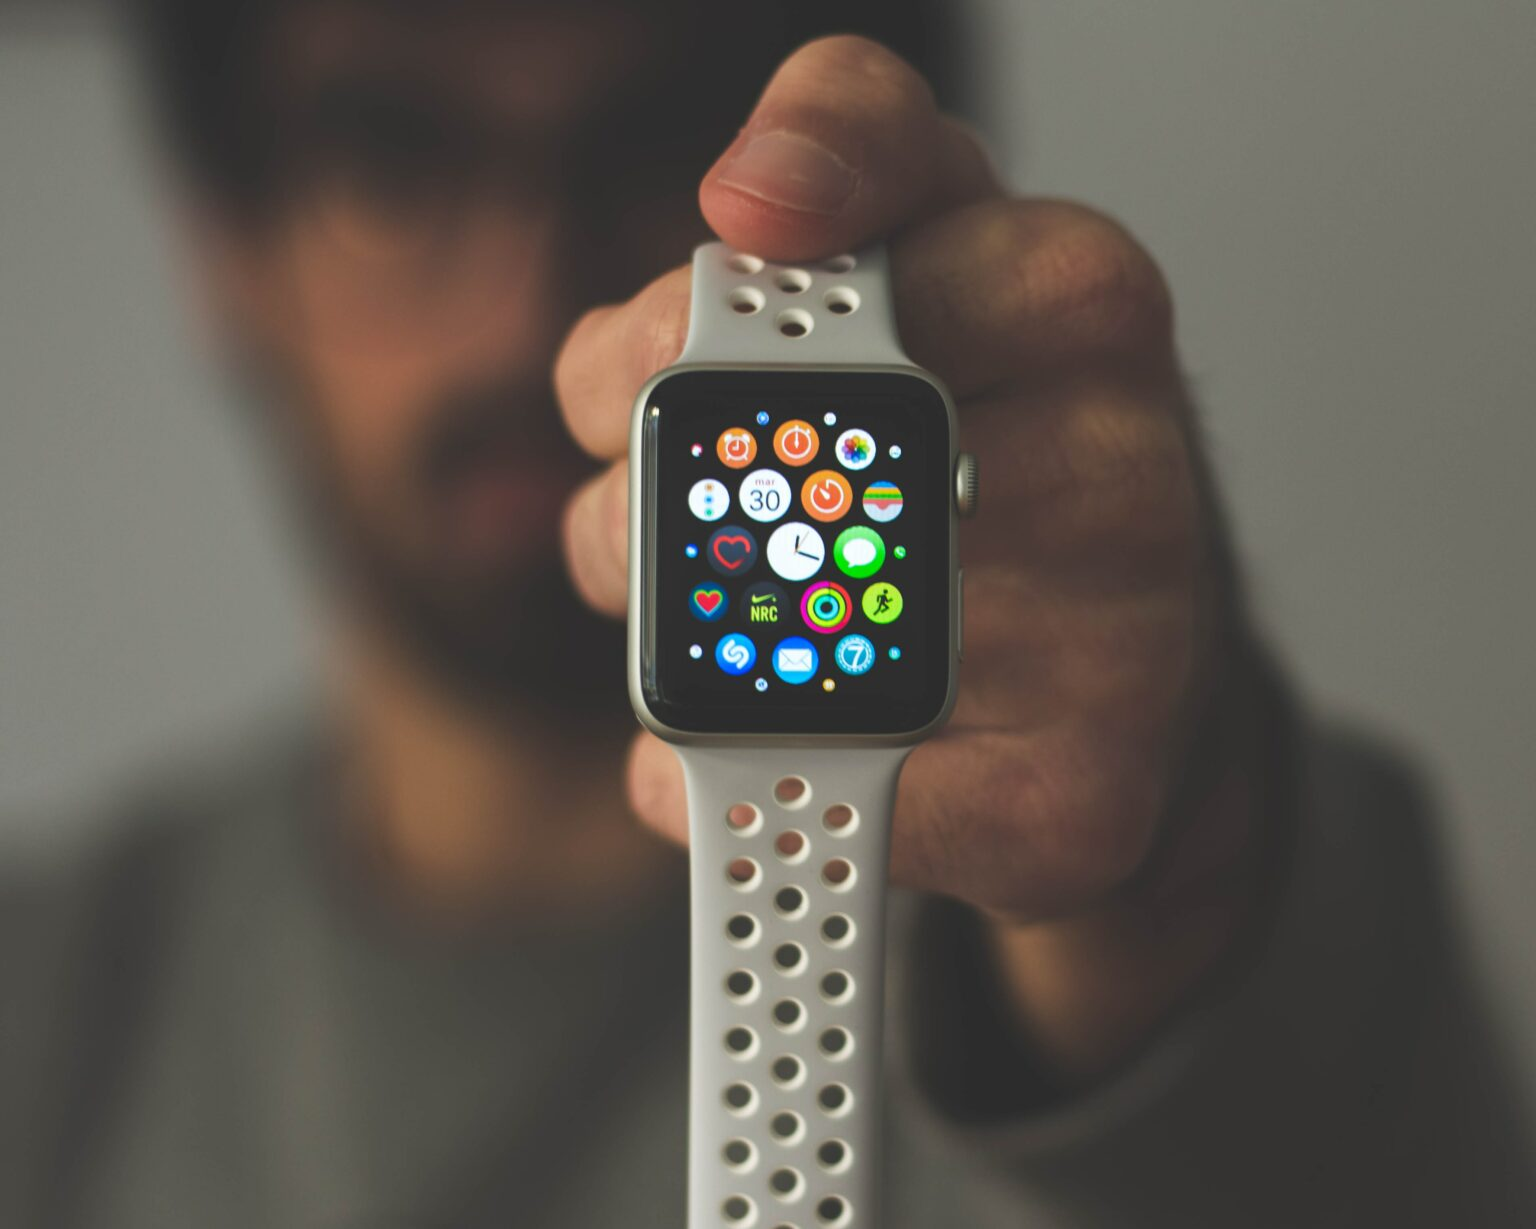 Change Apple Watch app layout from honeycomb grid to list view.